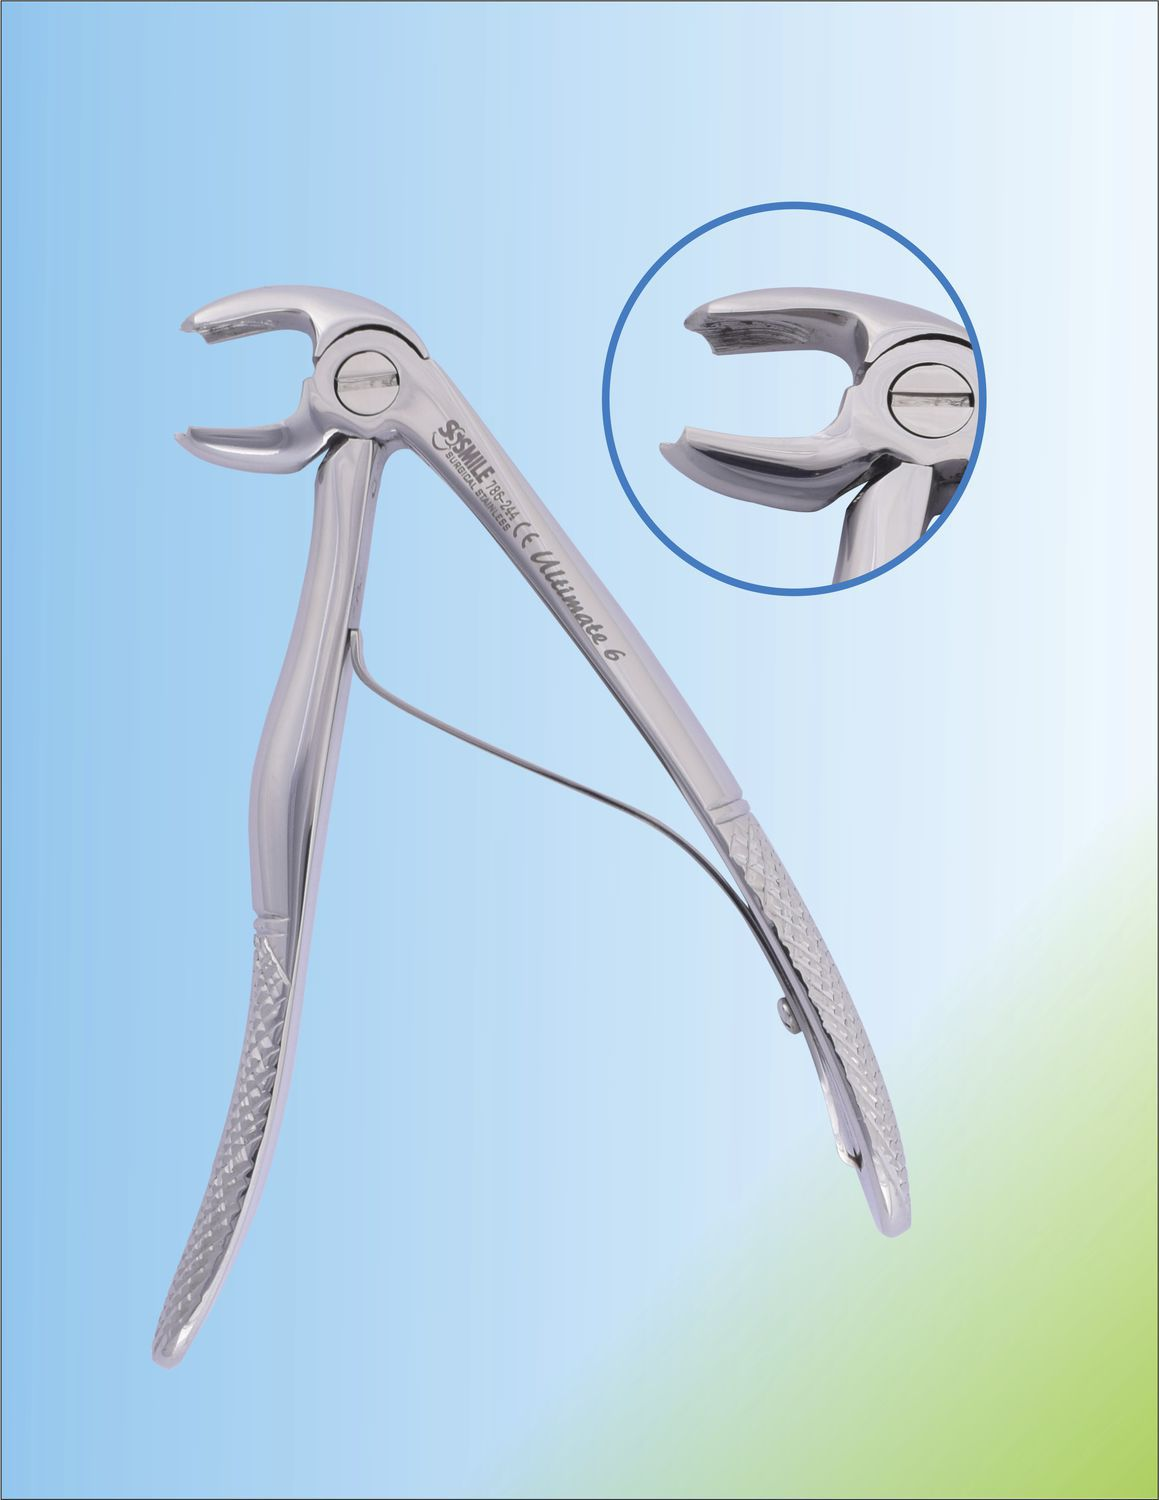 Baby Dental Extraction Forceps Ssi 786 244 Smile Surgical Ireland Limited For Lower Molars